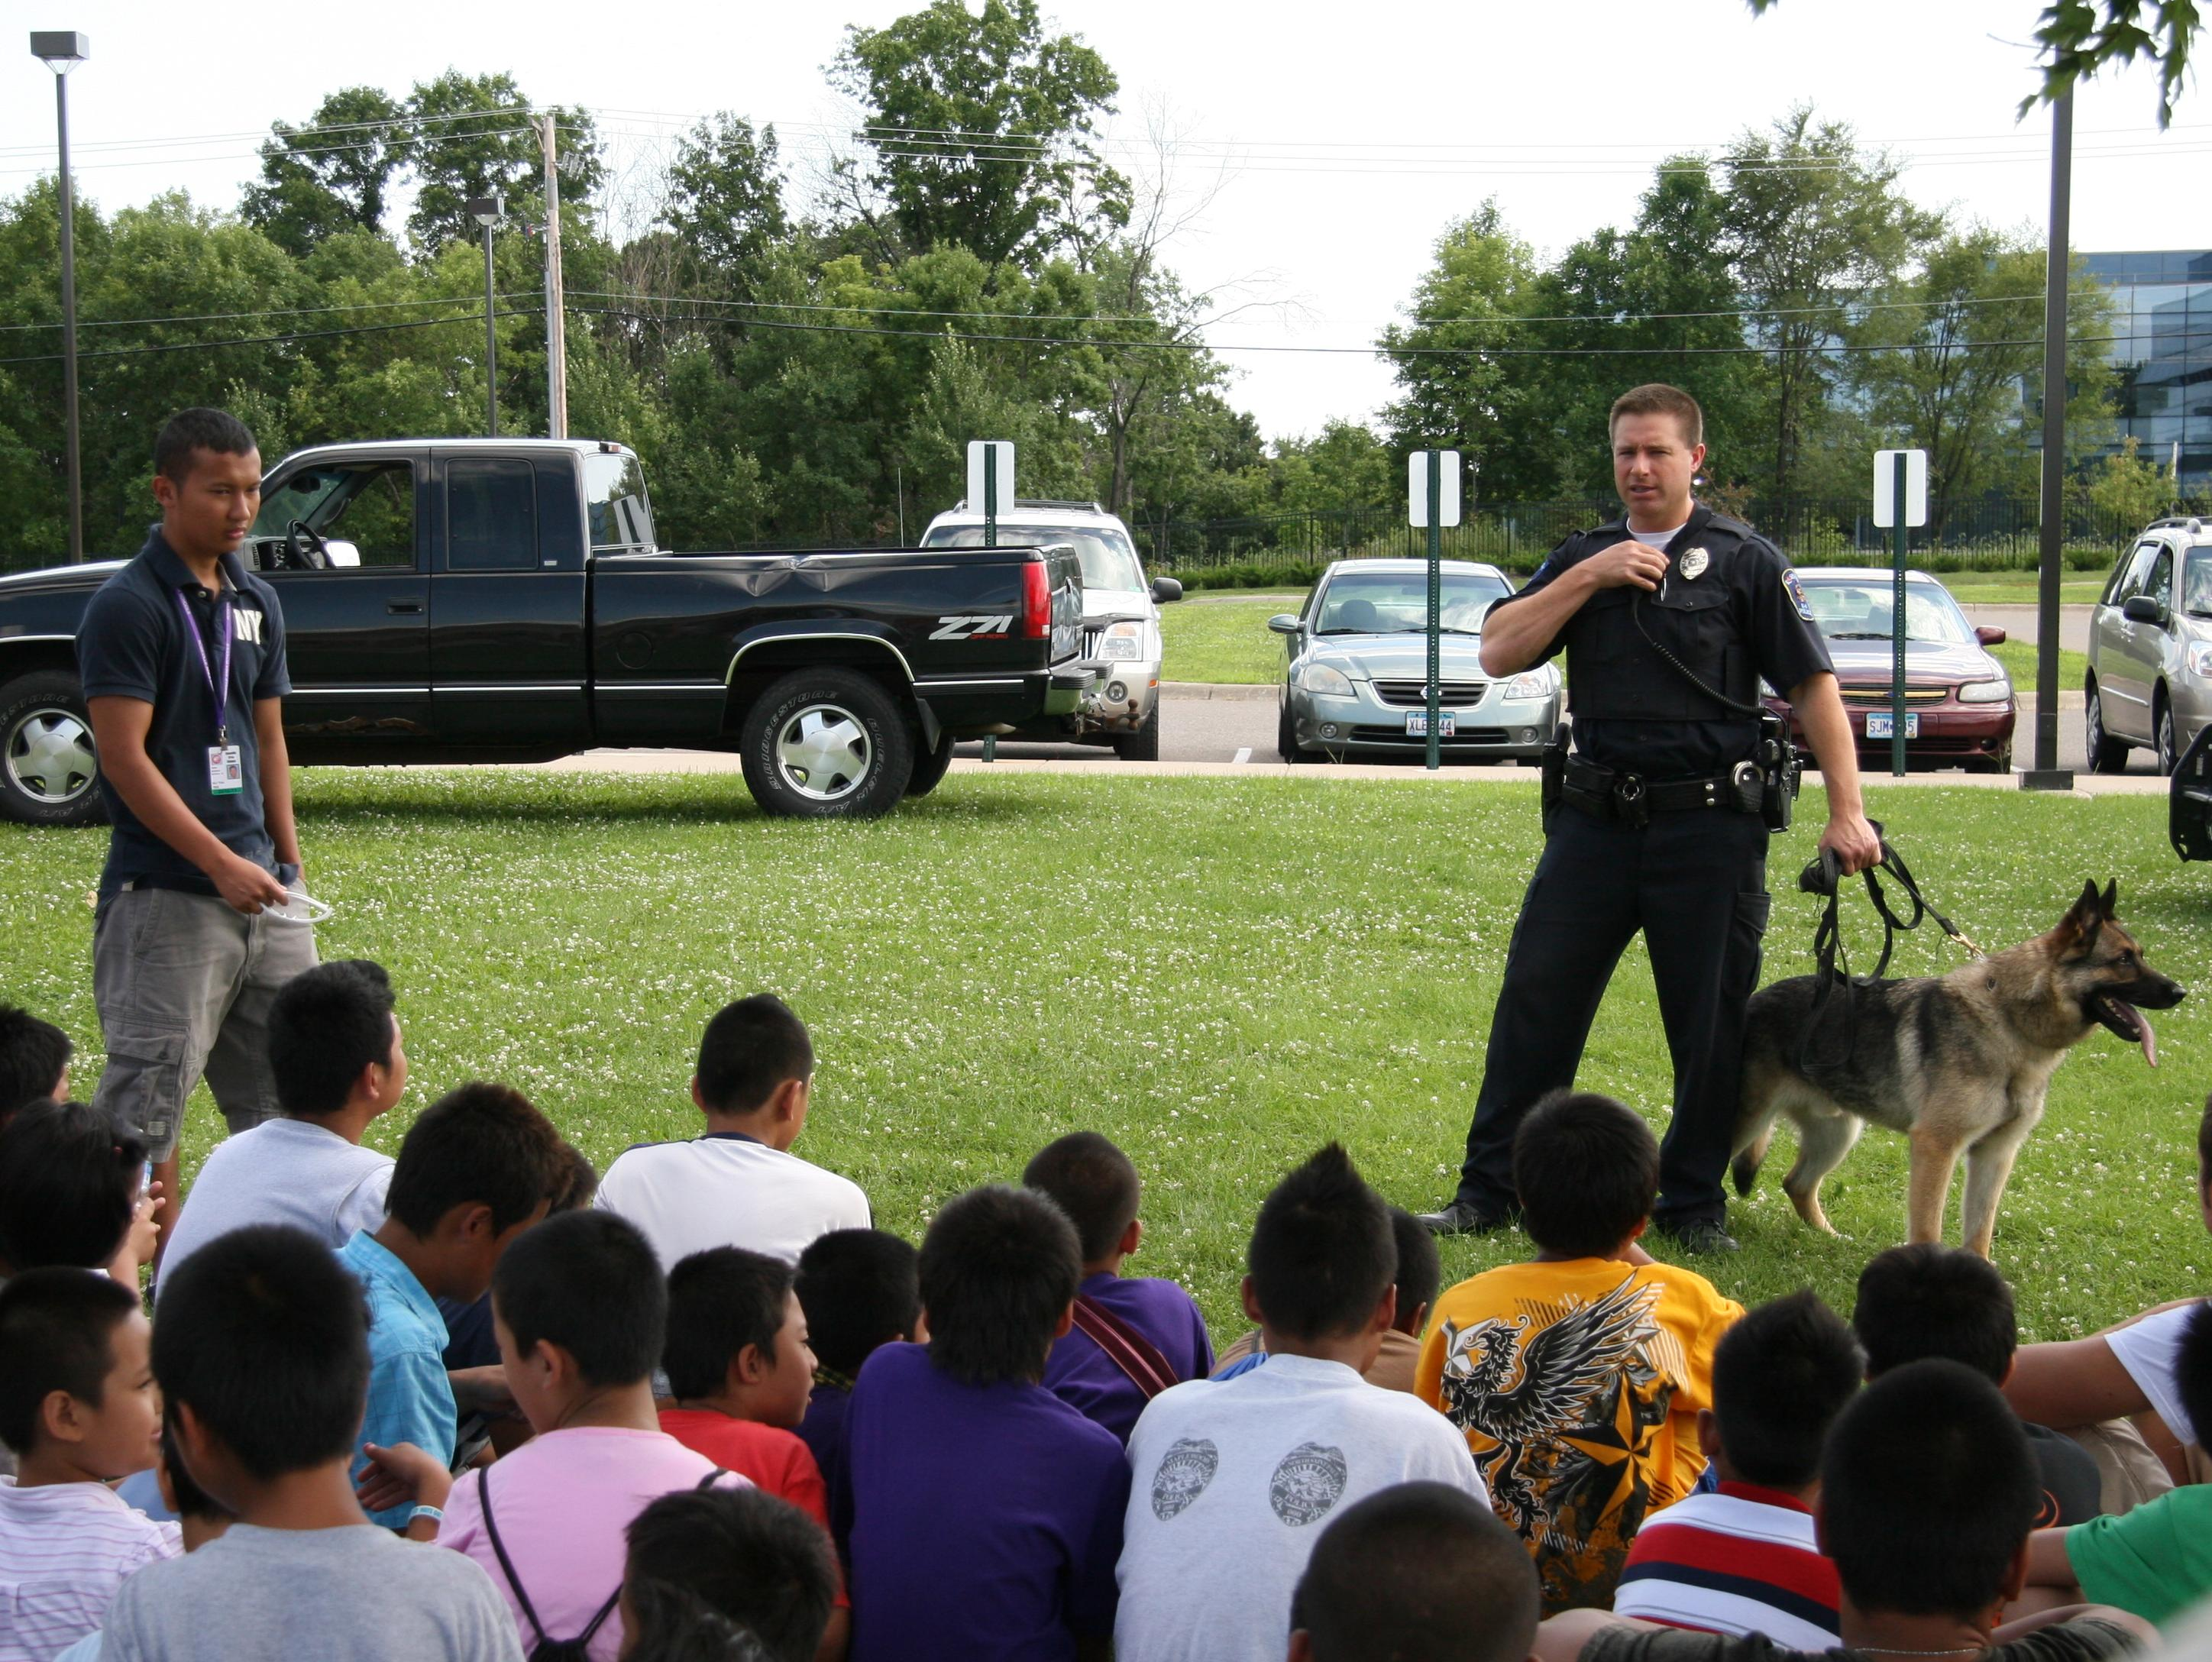 Officer Gray and Tasco providing a K9 demo during a summer program